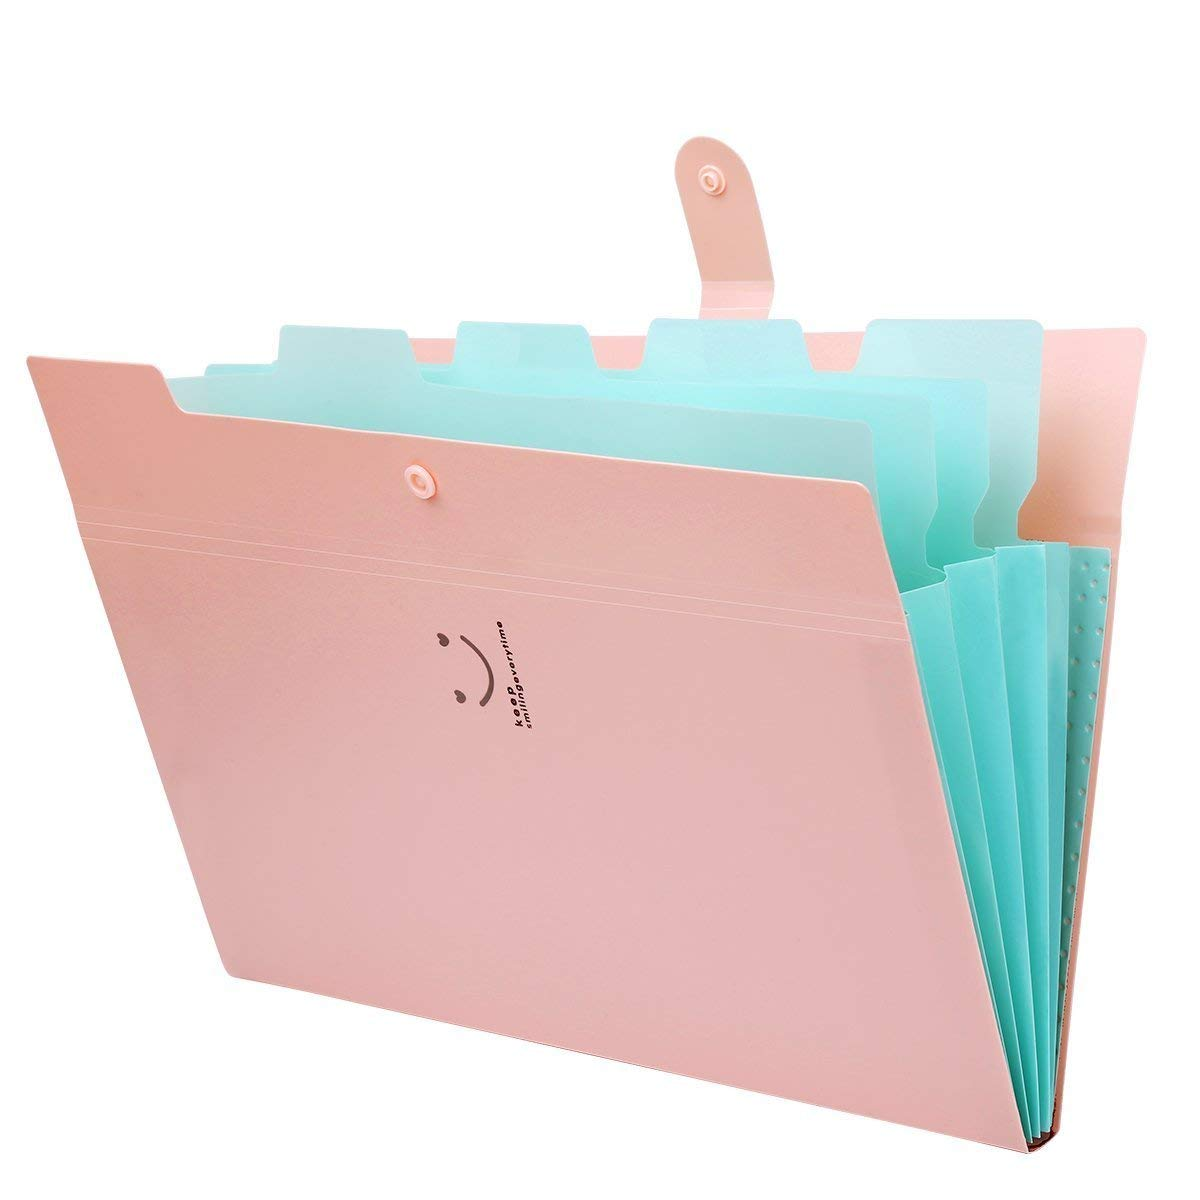 YILUYIQI EU Portable Accordion Expanding File Folder 5 Pockets, Expanding A4 and Letter Size File Organizer for Office, Home, School, Travel